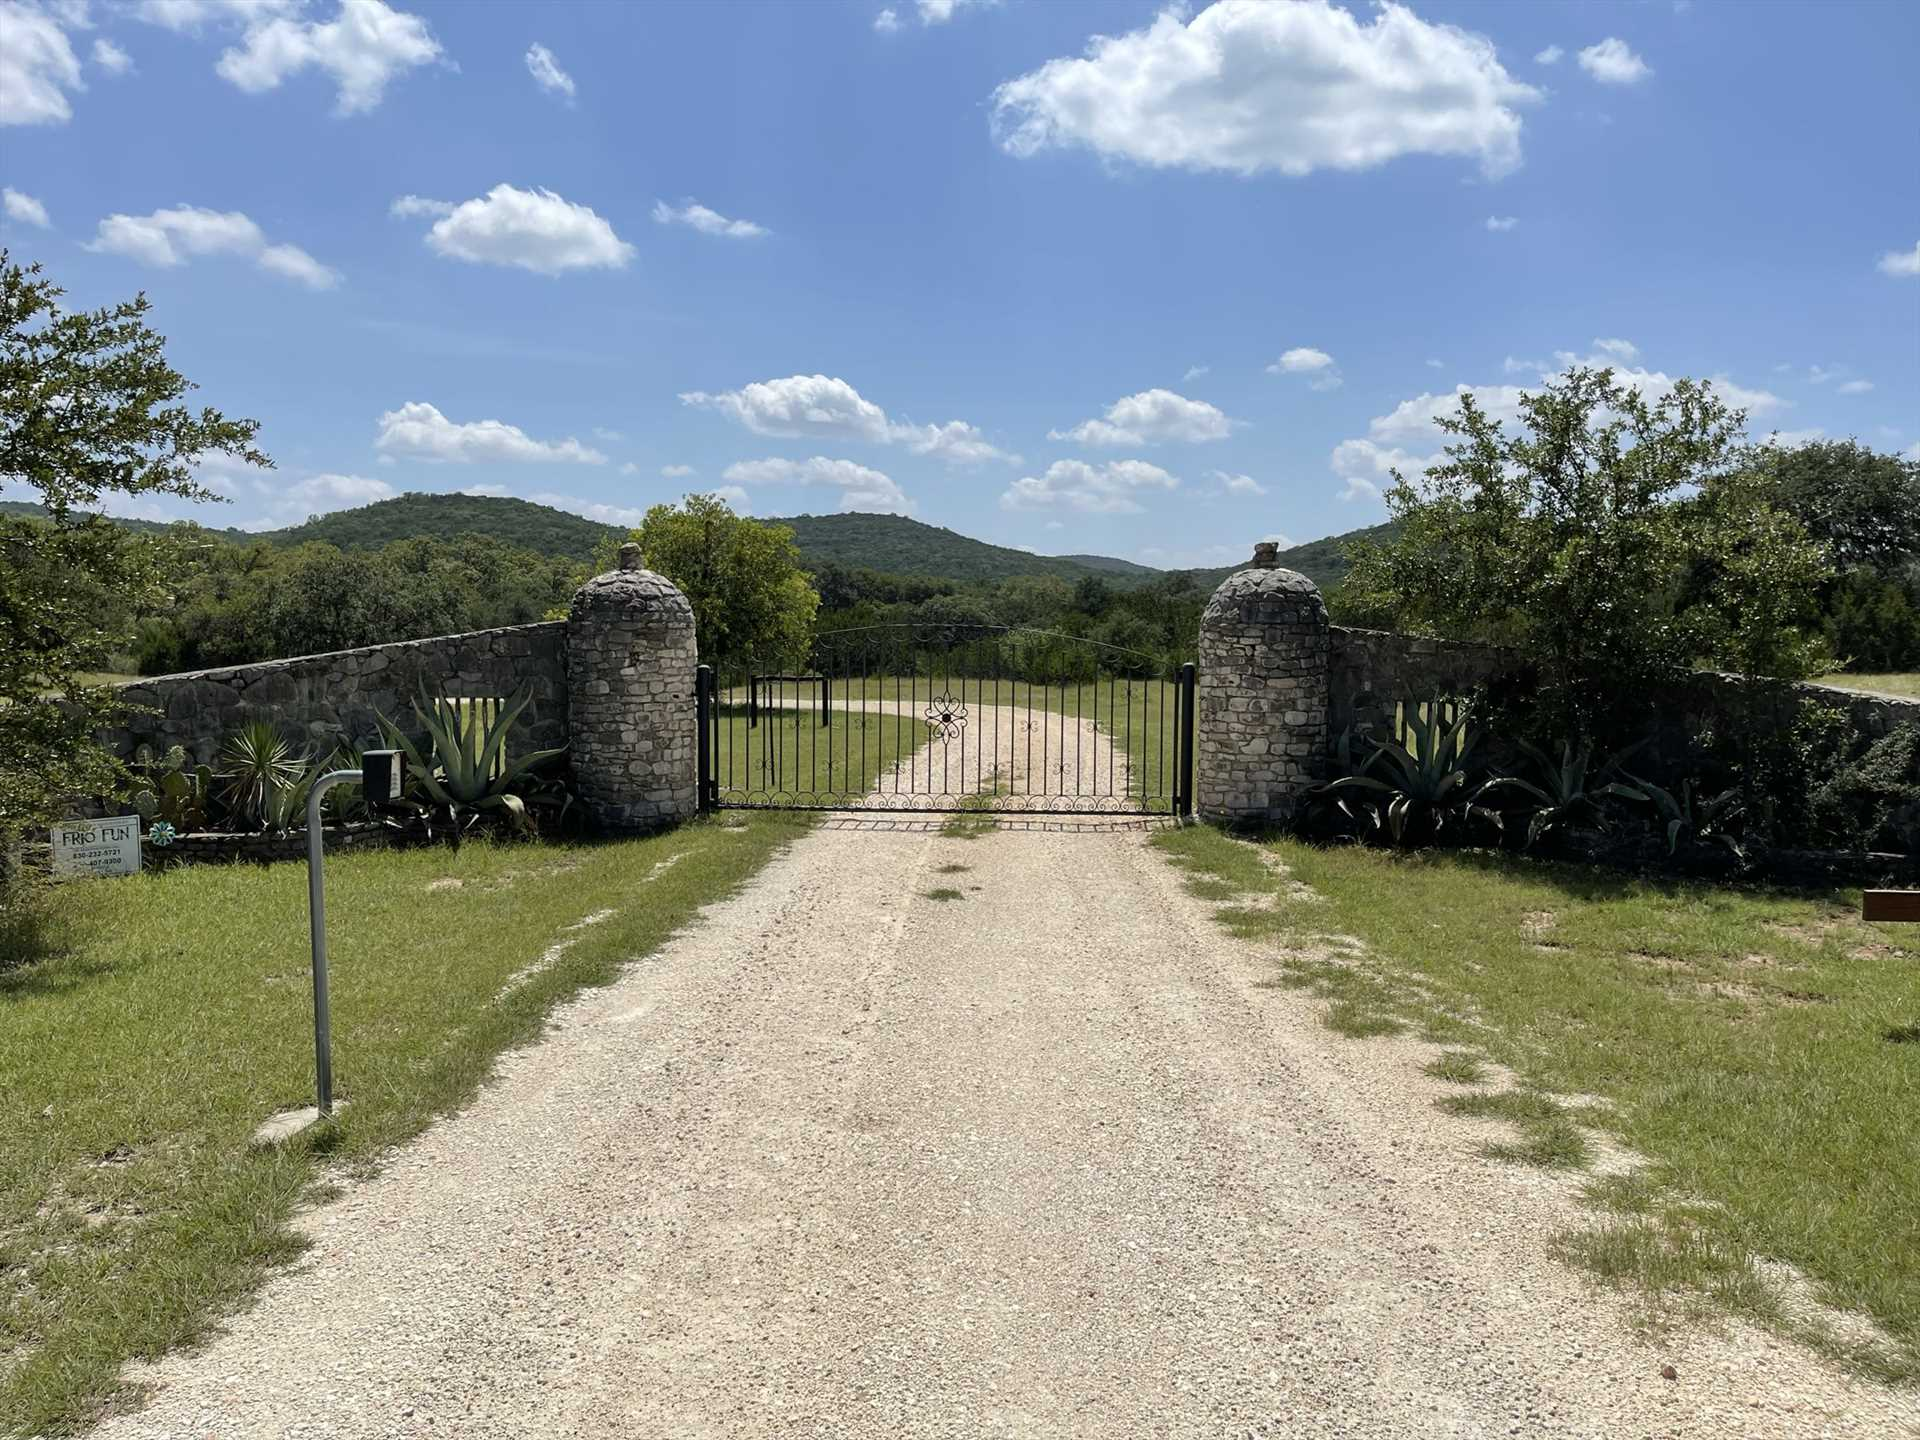 Beyond Lightning Bug Springs' 15 acres, you'll find Concan and the Frio River just down the road. The popular Garner State Park is also just 15 miles away!